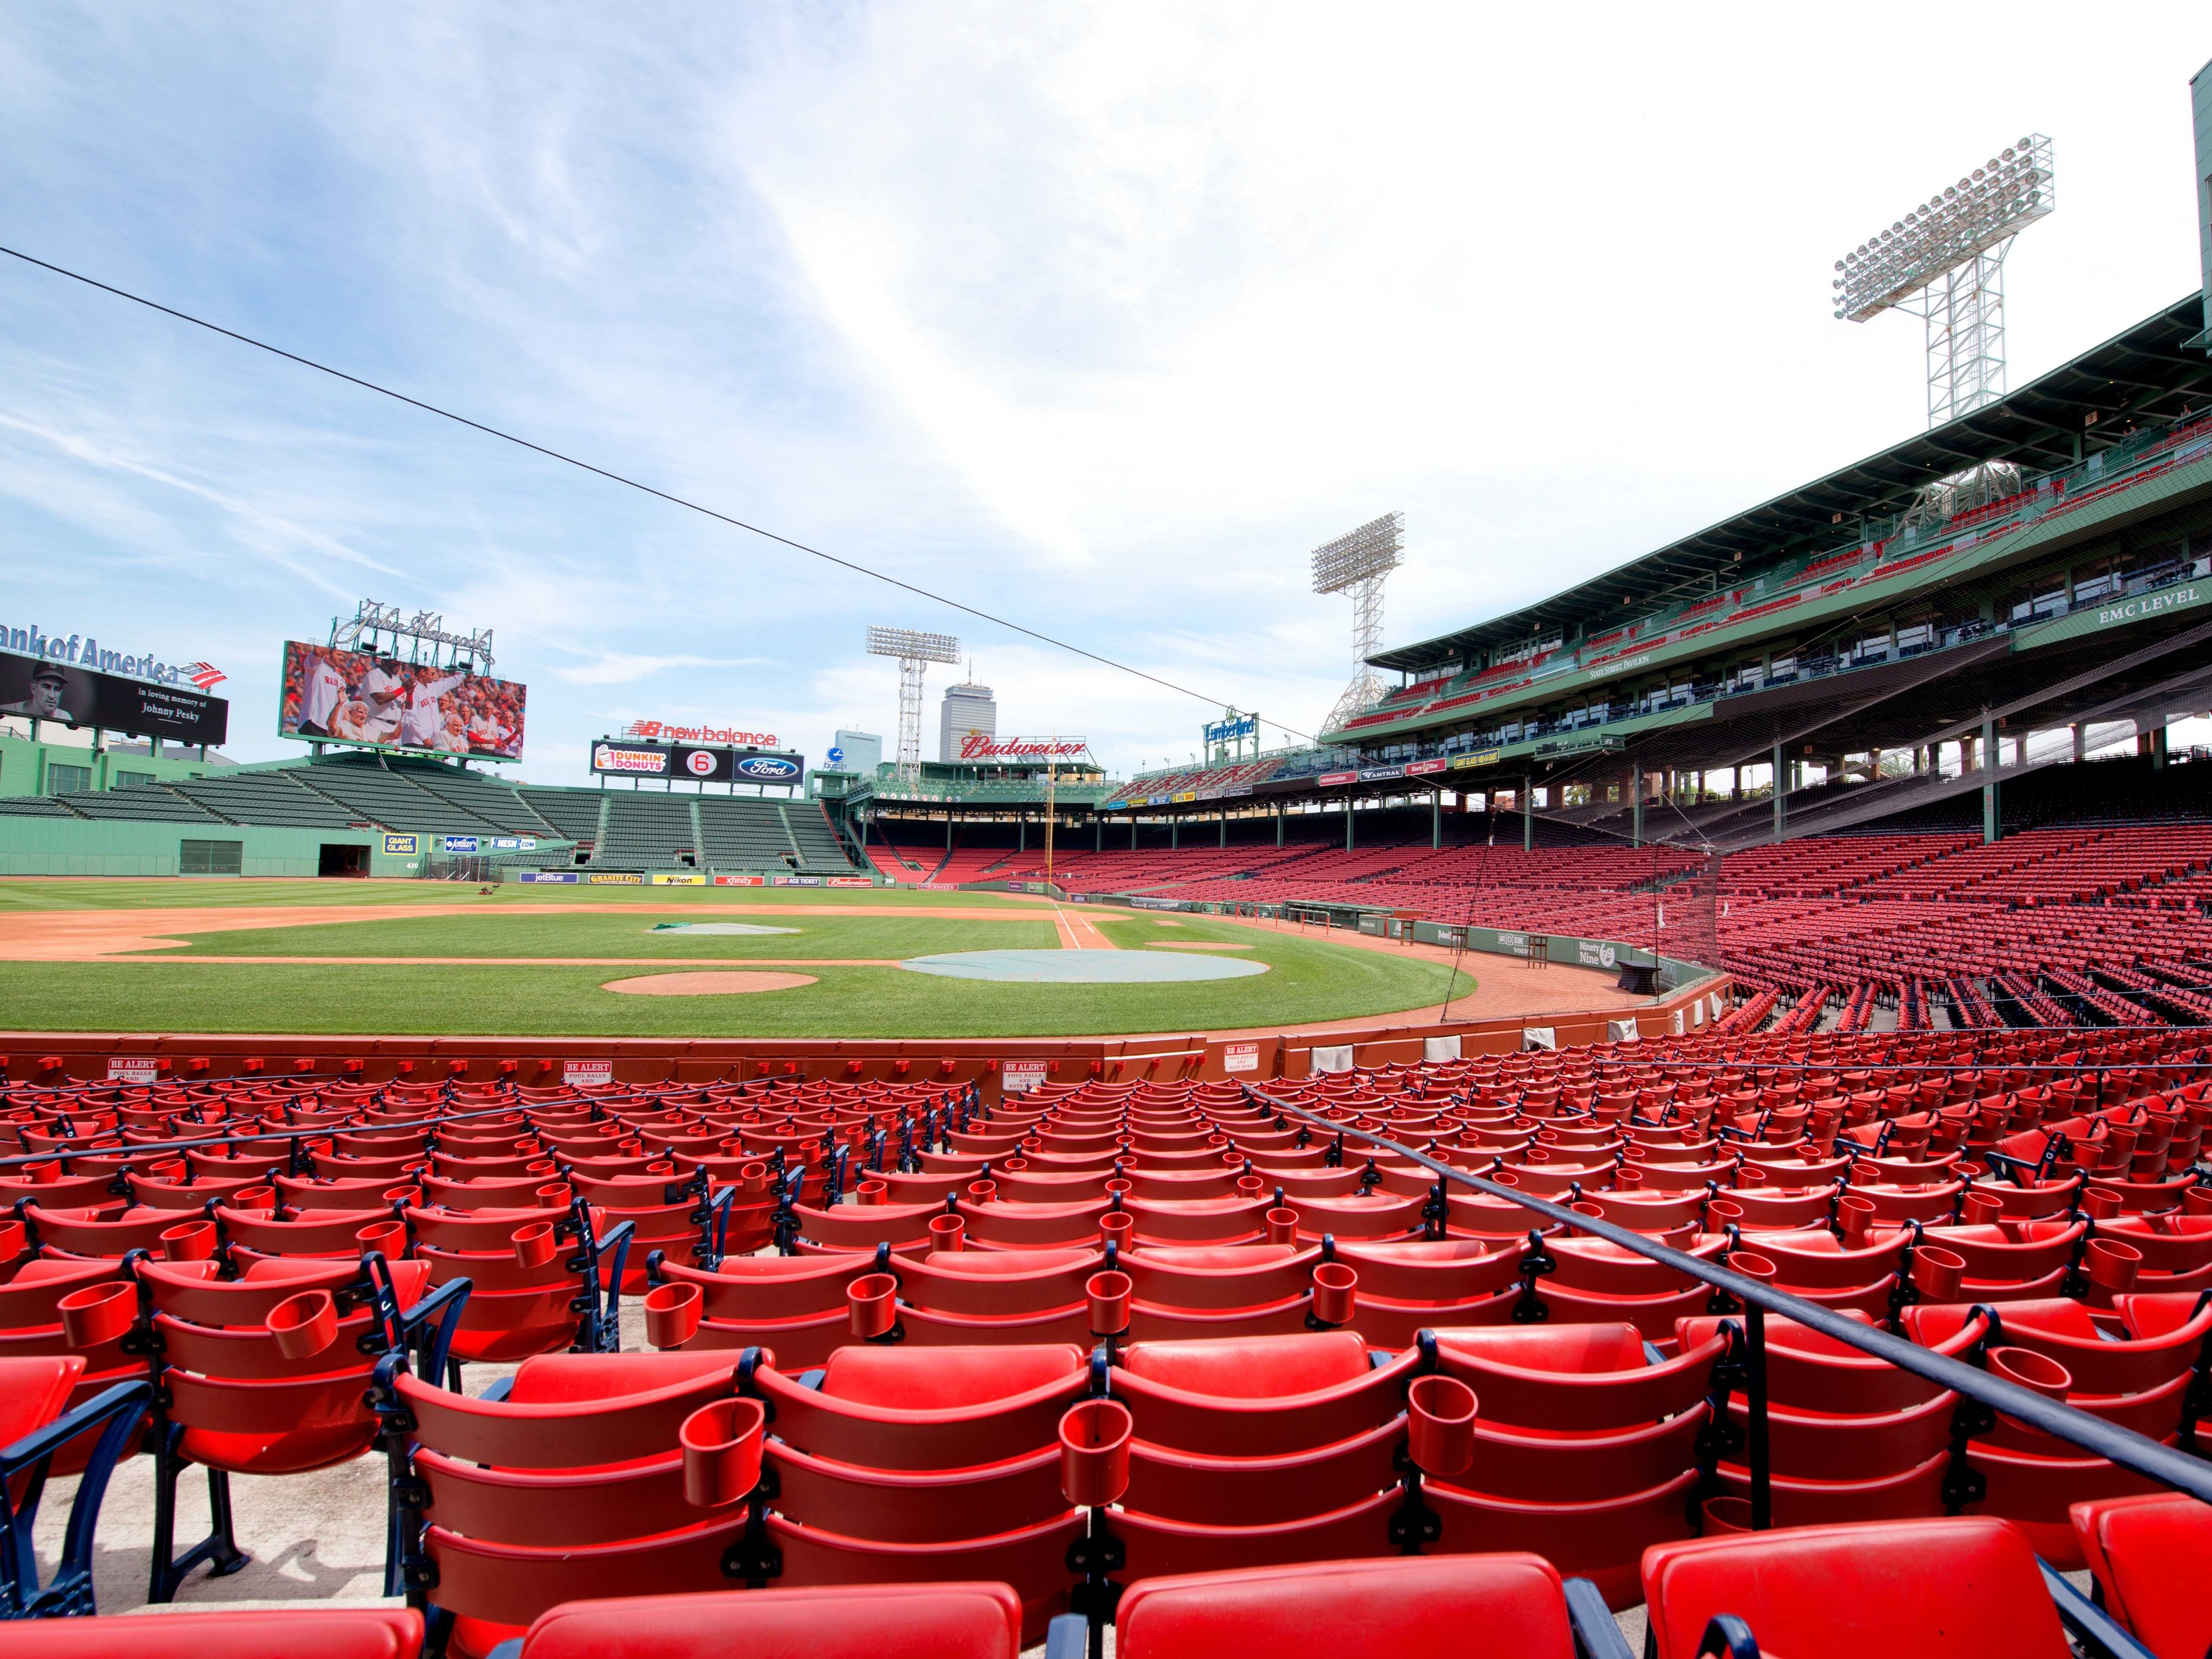 Dropkick Murphys and Bruce Springsteen will play to an empty Fenway Park